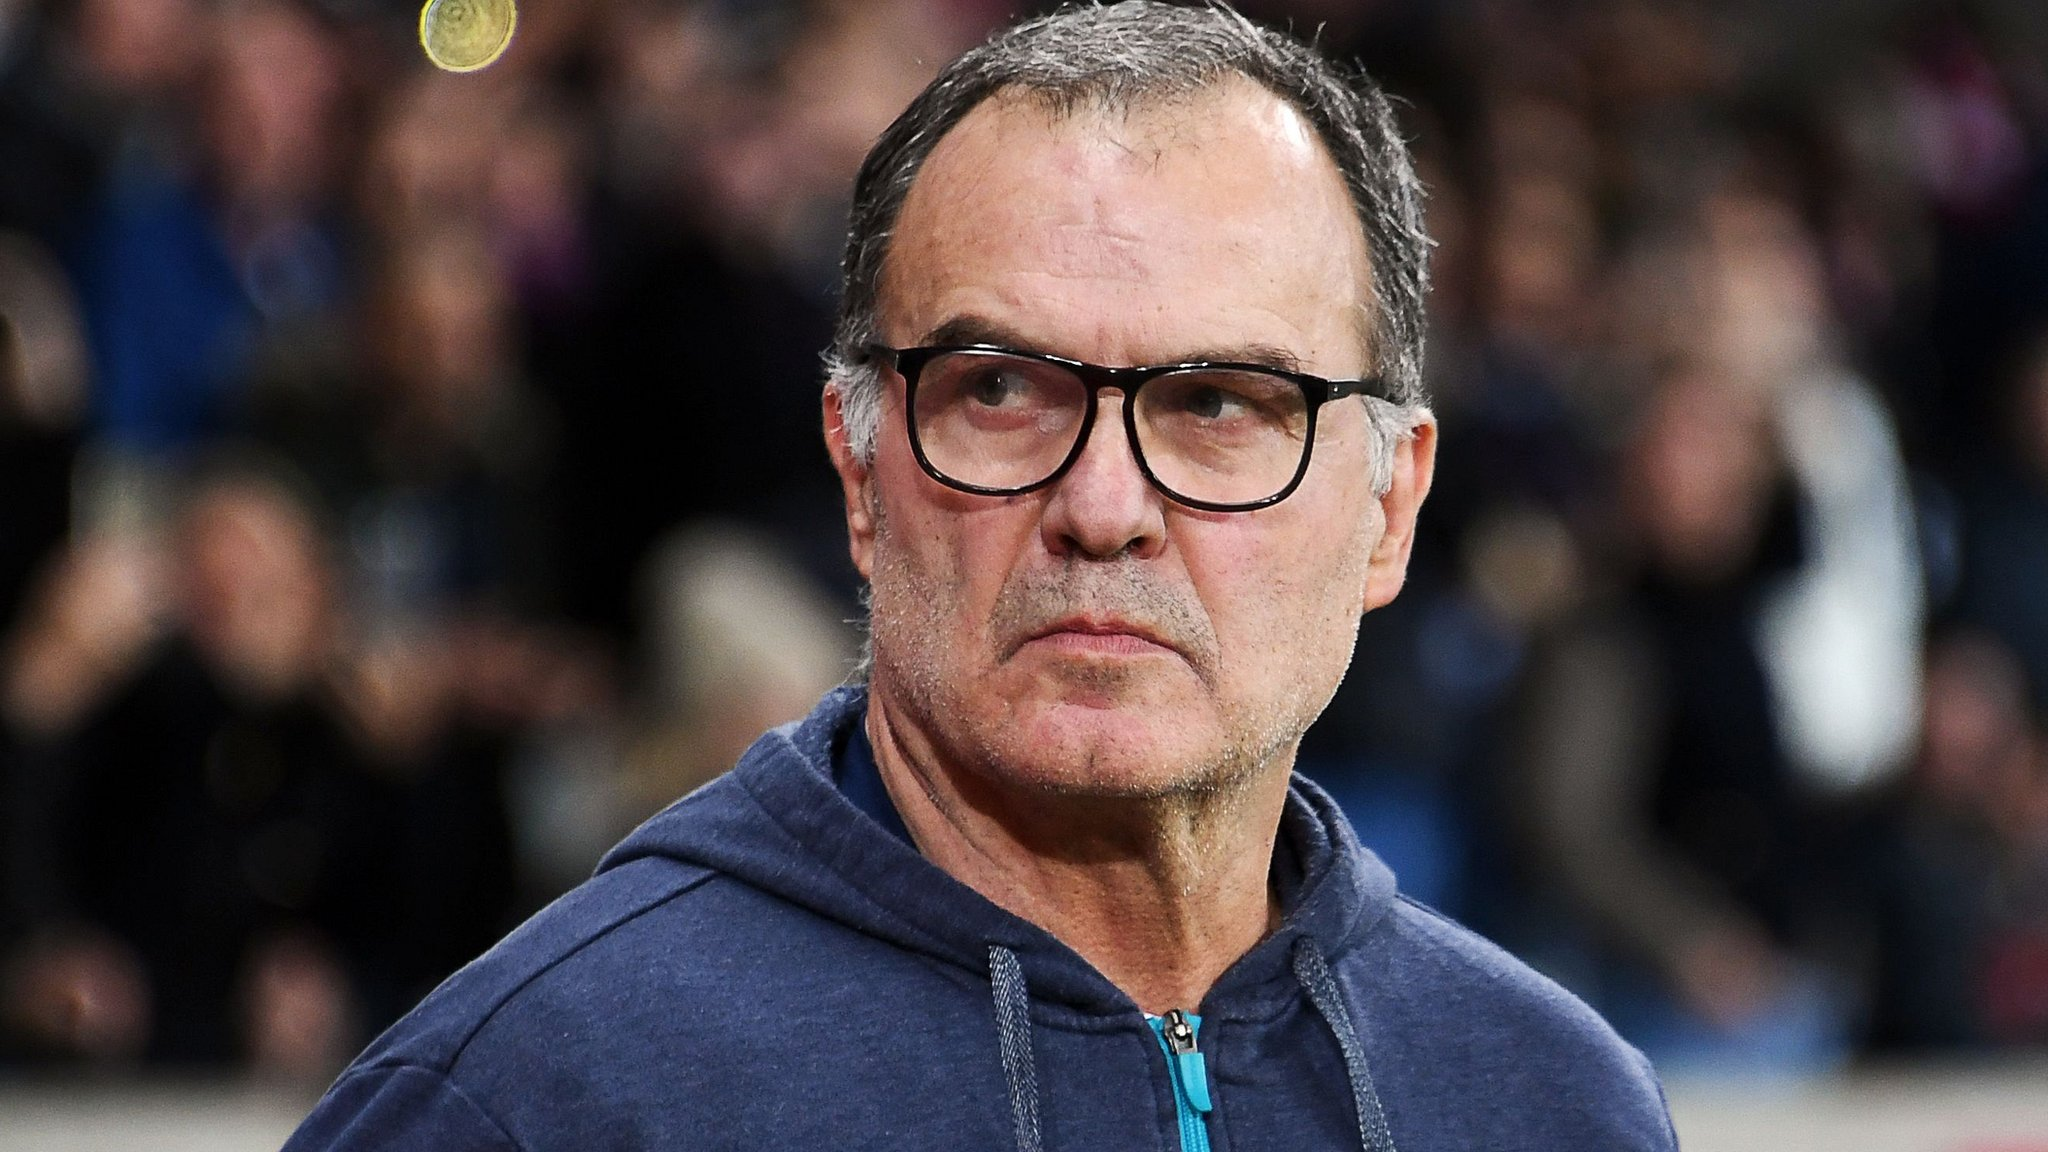 Leeds United: Marcelo Bielsa signs two-year contract to become new manager